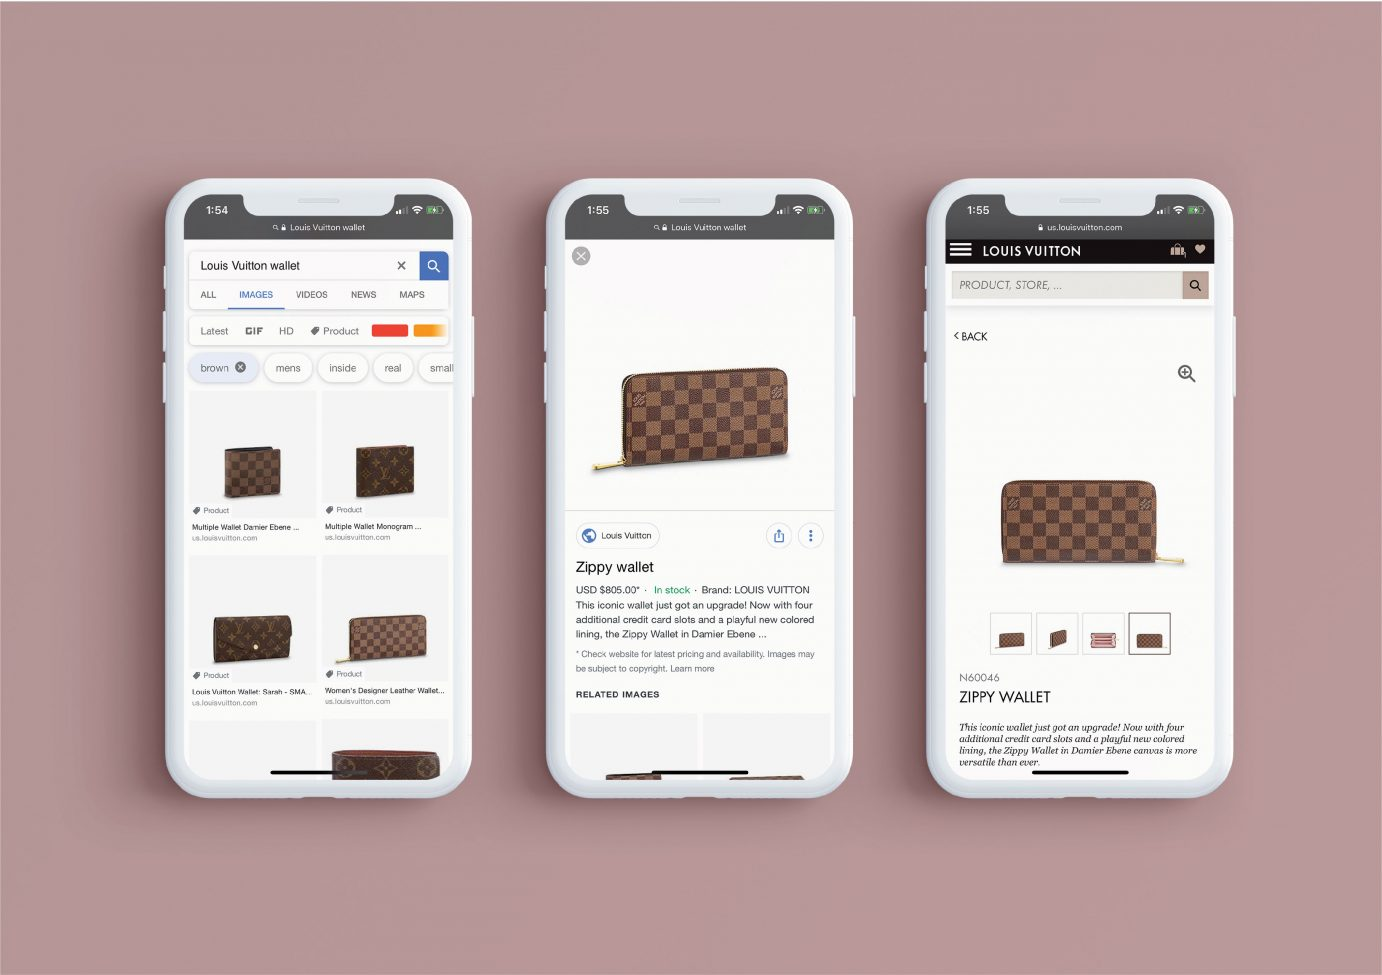 Google image search and Google product page